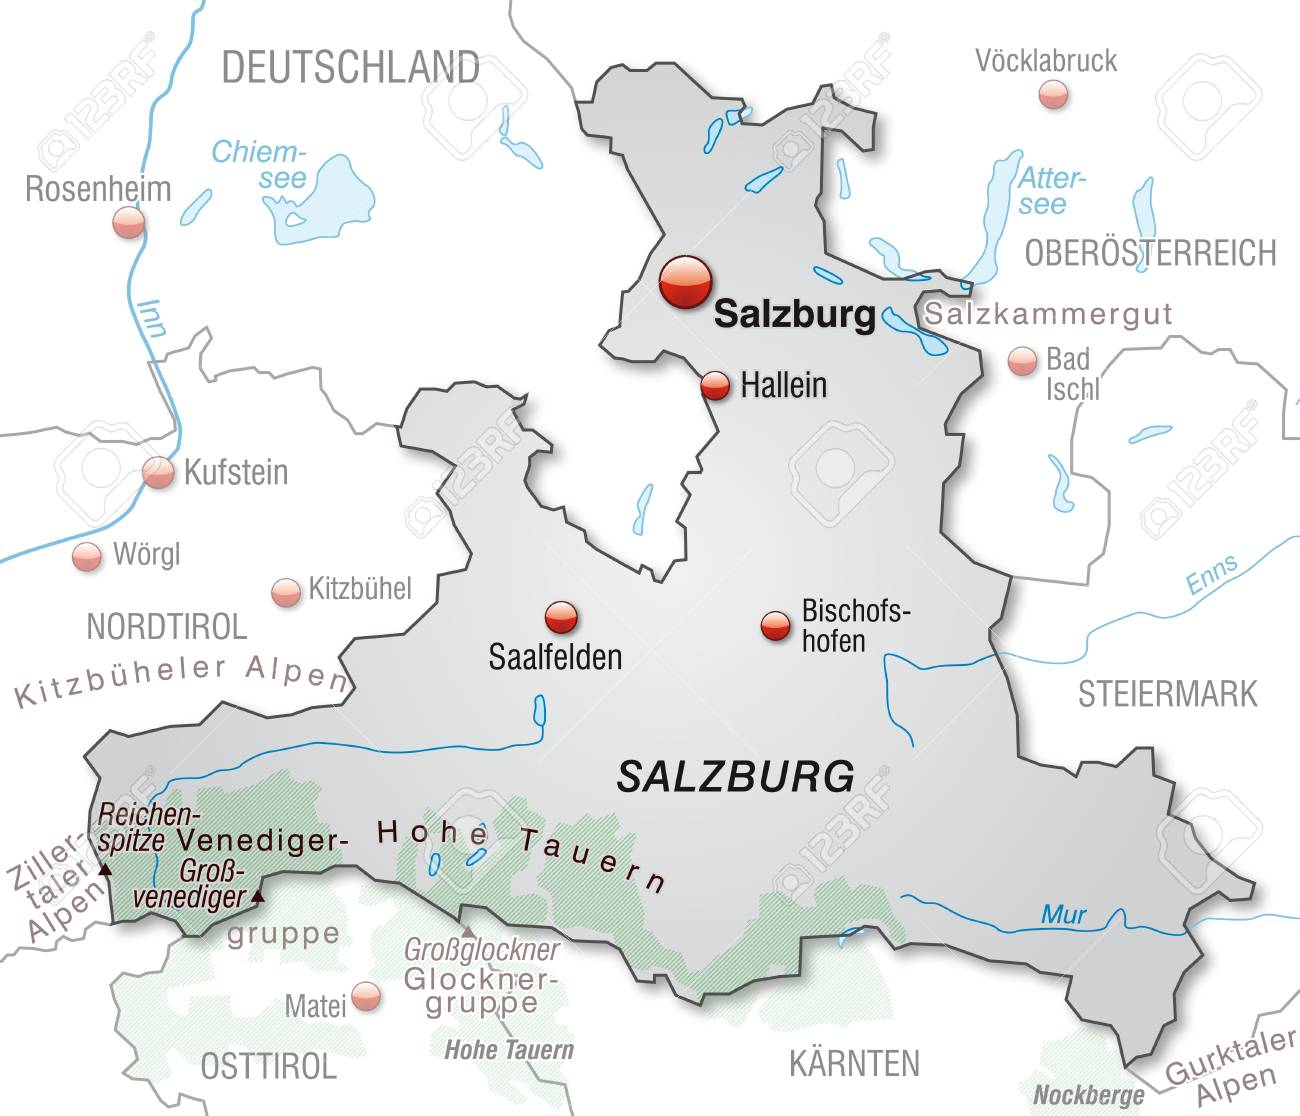 salzburg karte deutschland Map Of Salzburg As An Overview Map In Gray Stock Photo, Picture